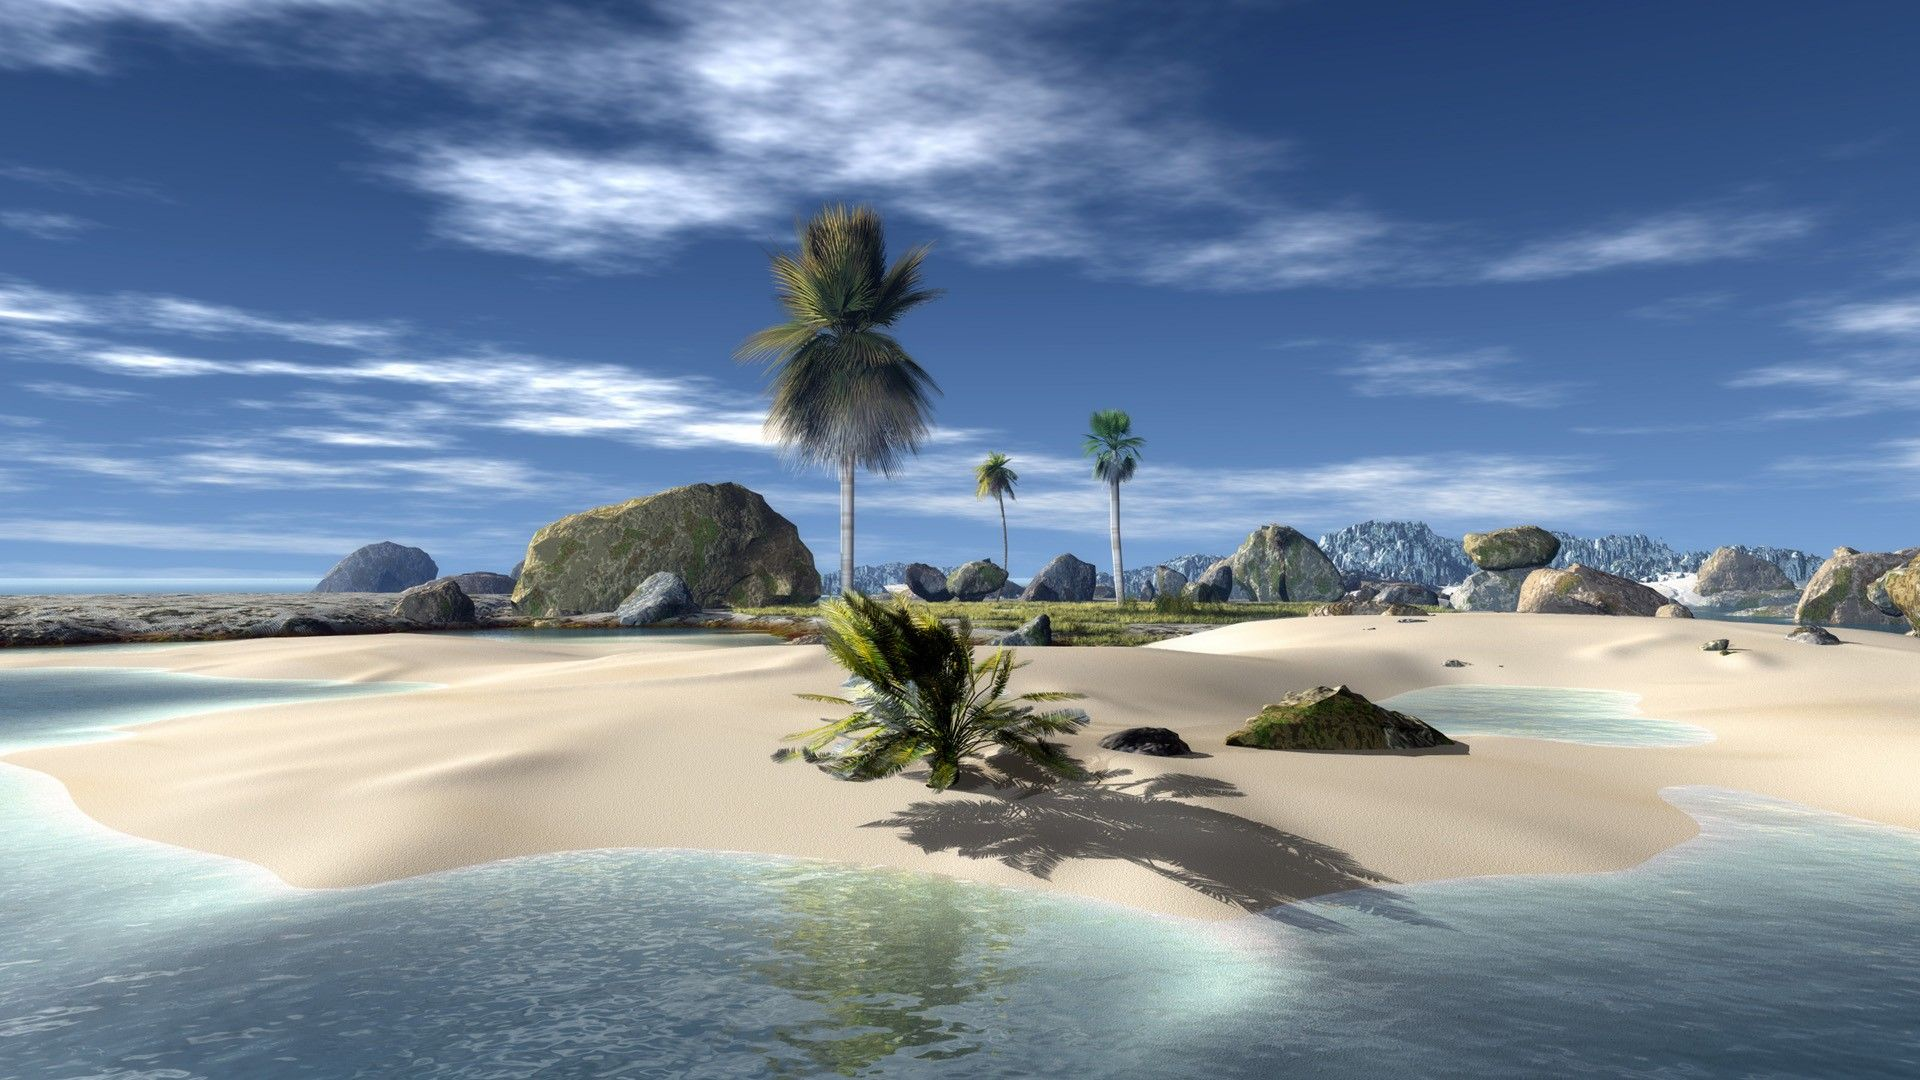 desktop wallpaper free download backgrounds for pc hdq cover